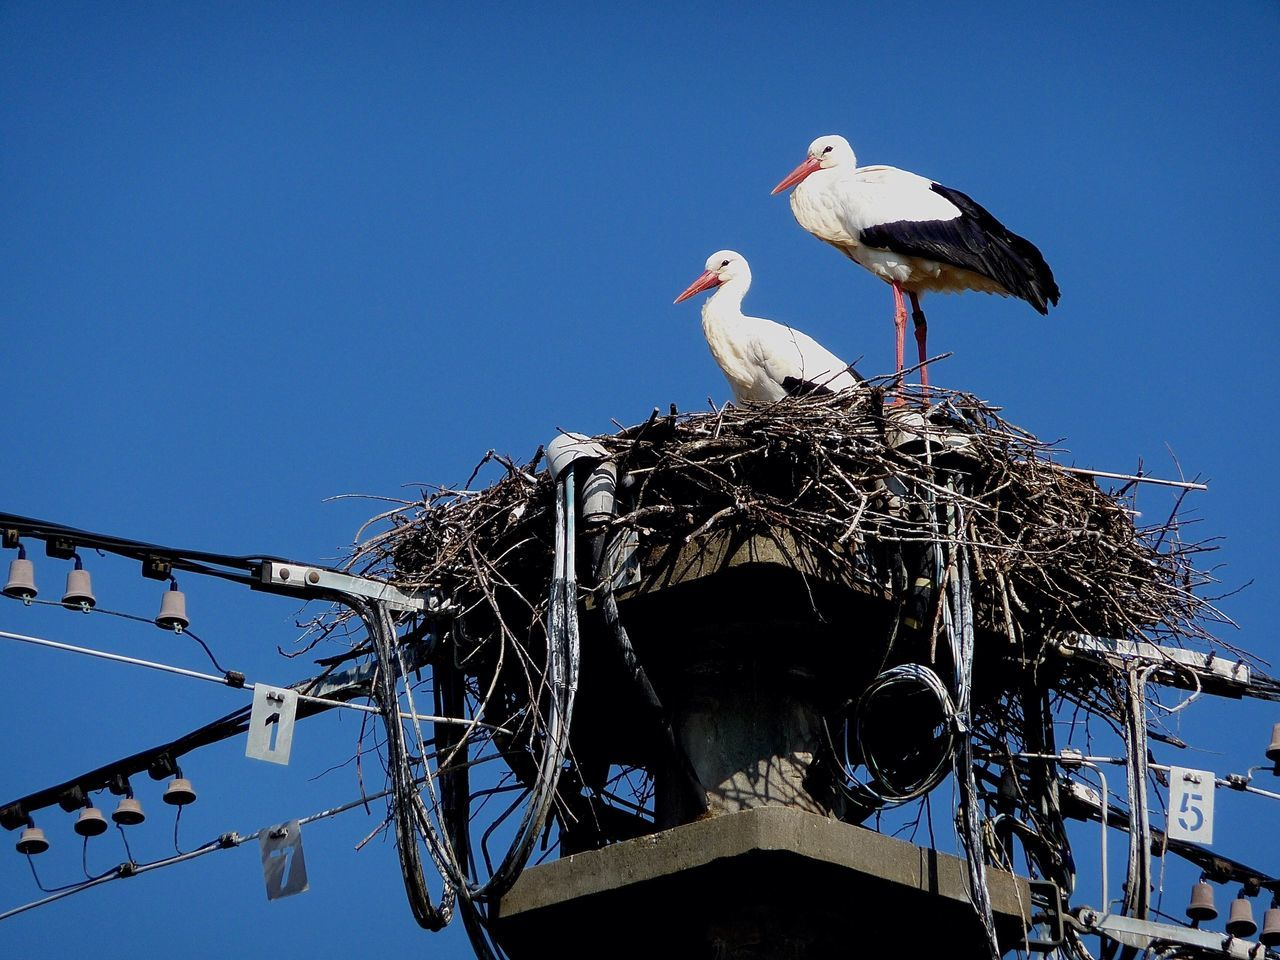 animal nest, bird, animals in the wild, stork, clear sky, low angle view, bird nest, white stork, animal themes, two animals, day, no people, outdoors, nature, animal wildlife, blue, togetherness, perching, sky